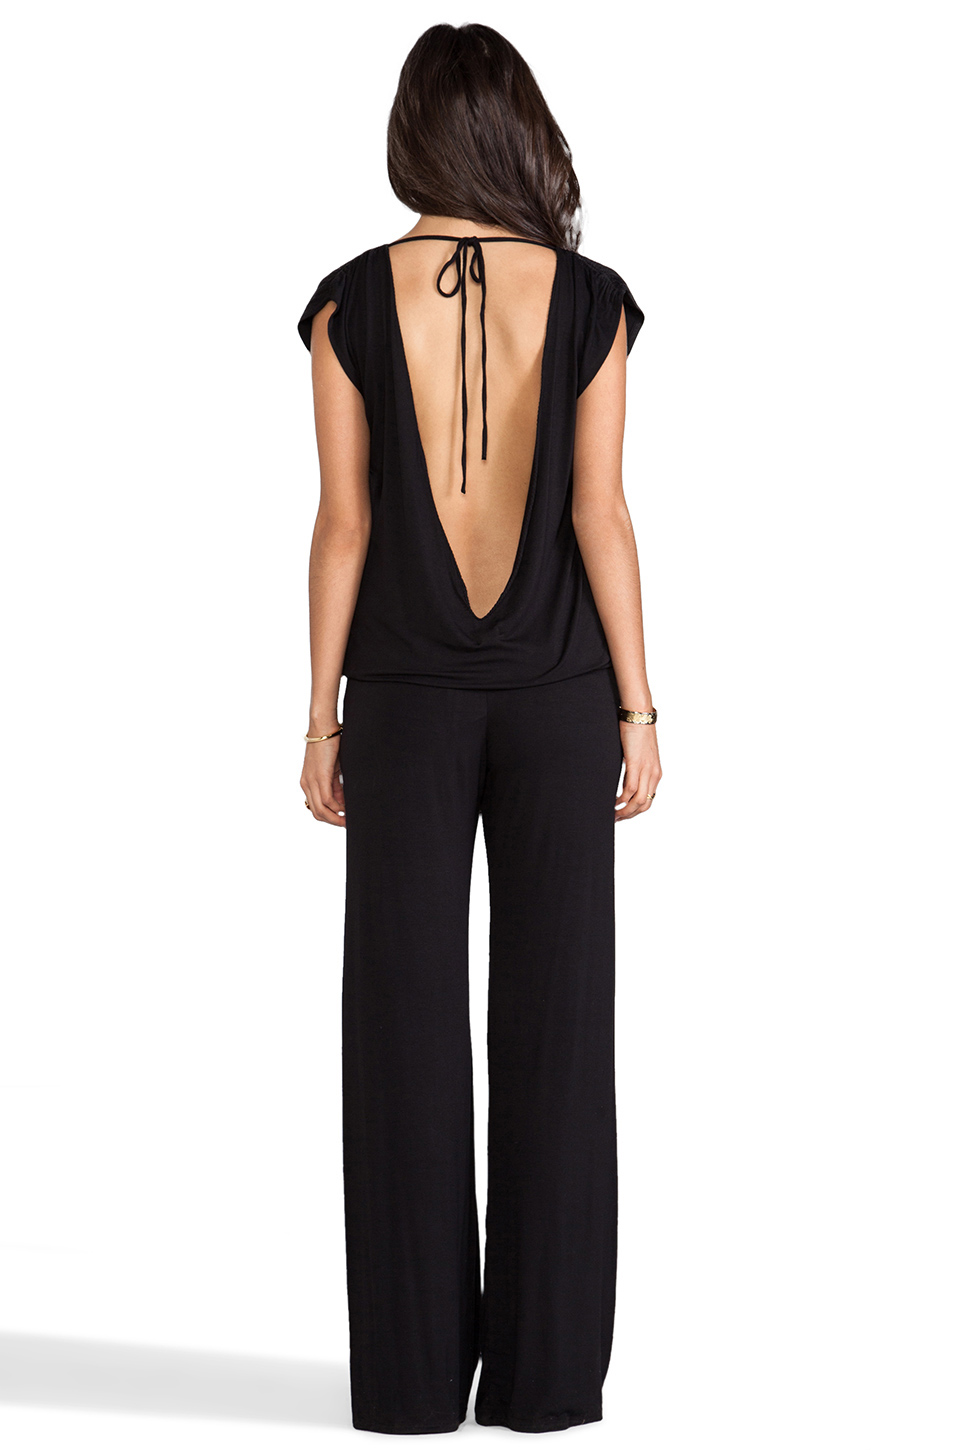 Indah Sooty Open Back Lounge Pantsuit in Black